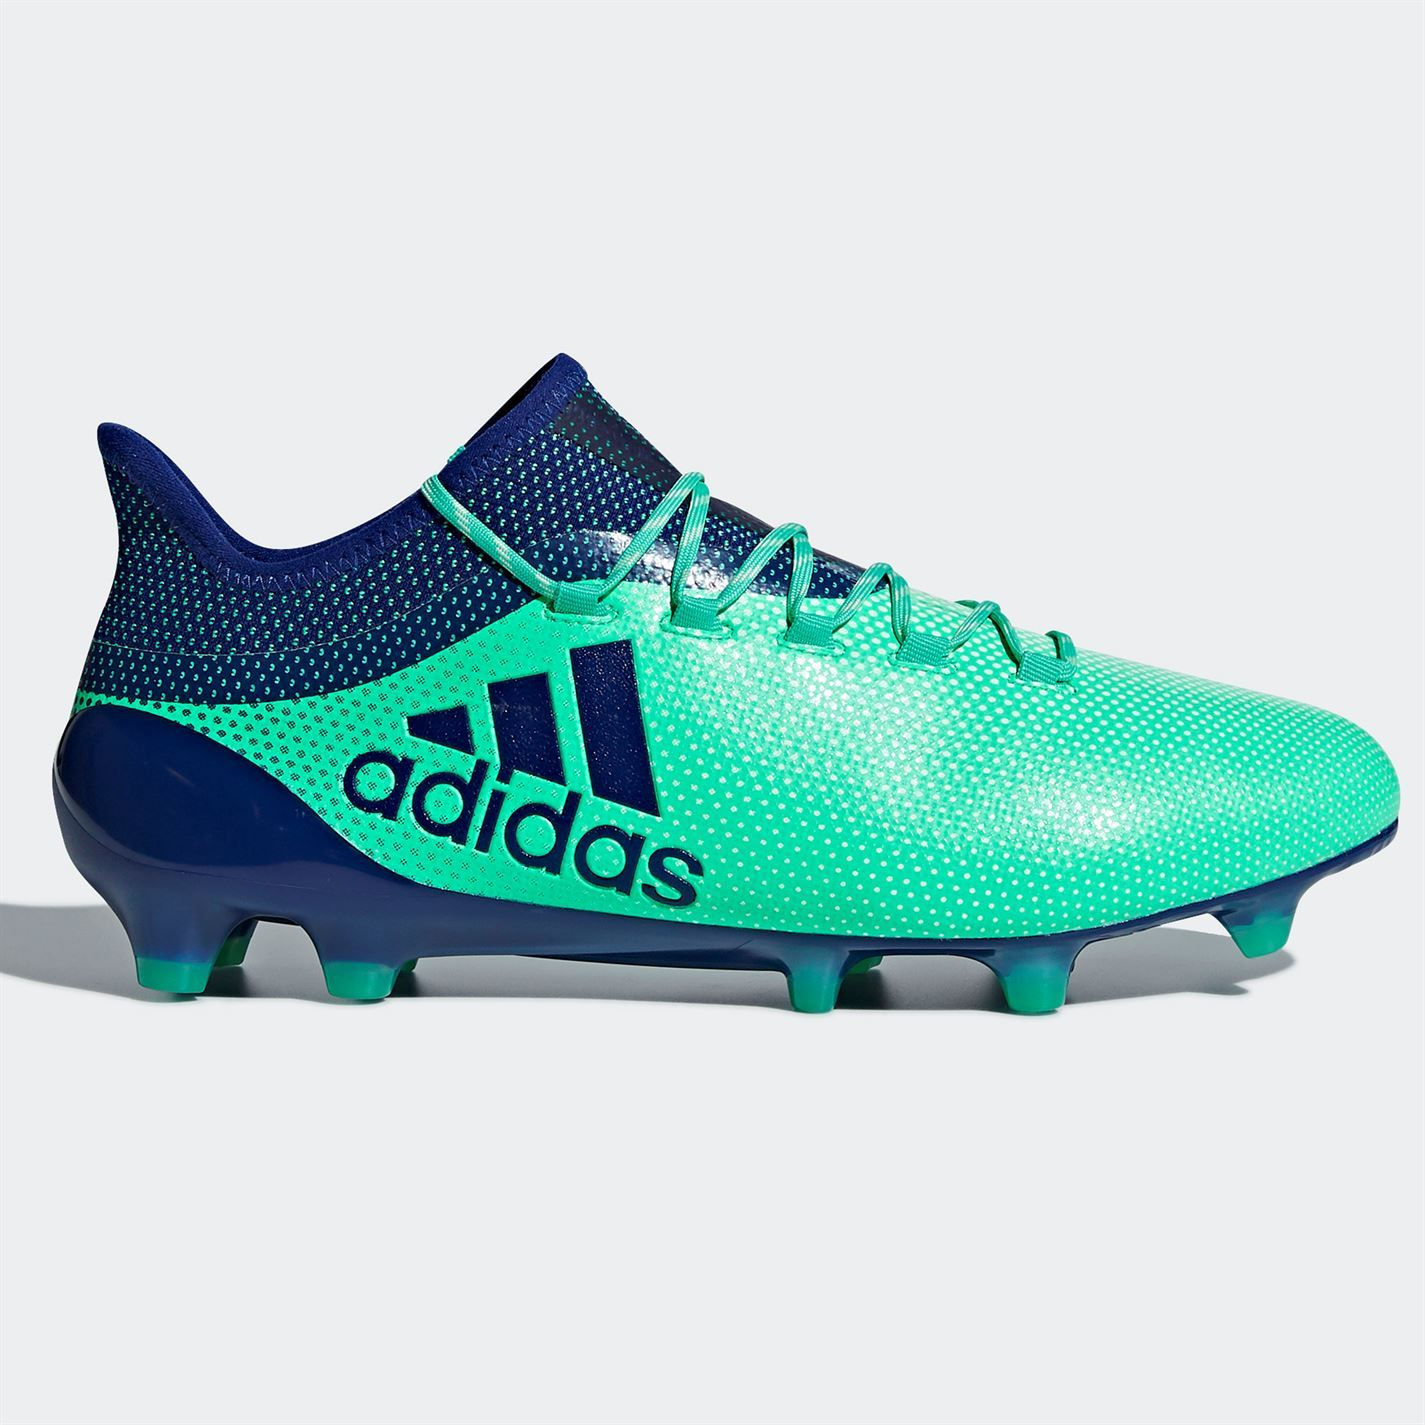 75e2944b174f13 ... adidas X 17.1 FG Firm Ground Football Boots Mens Green/Ink Soccer Shoes  Cleats ...